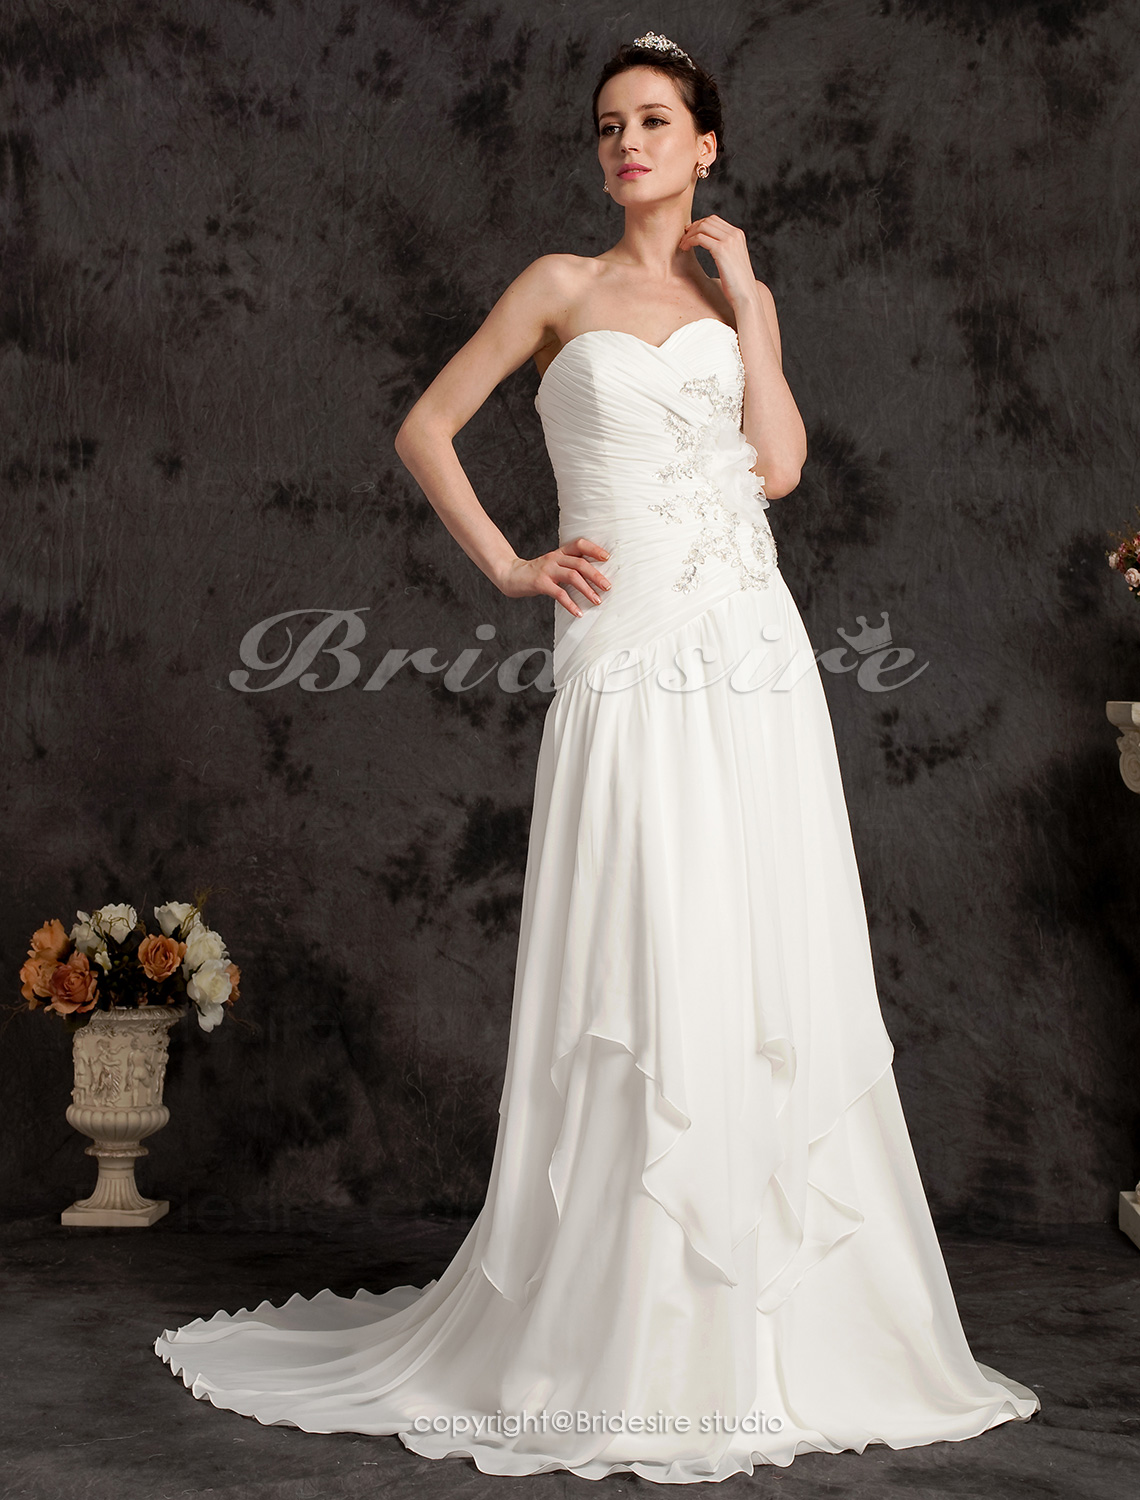 Sheath/Column Chiffon And Stretch Satin Court Train Sweetheart Wedding Dress